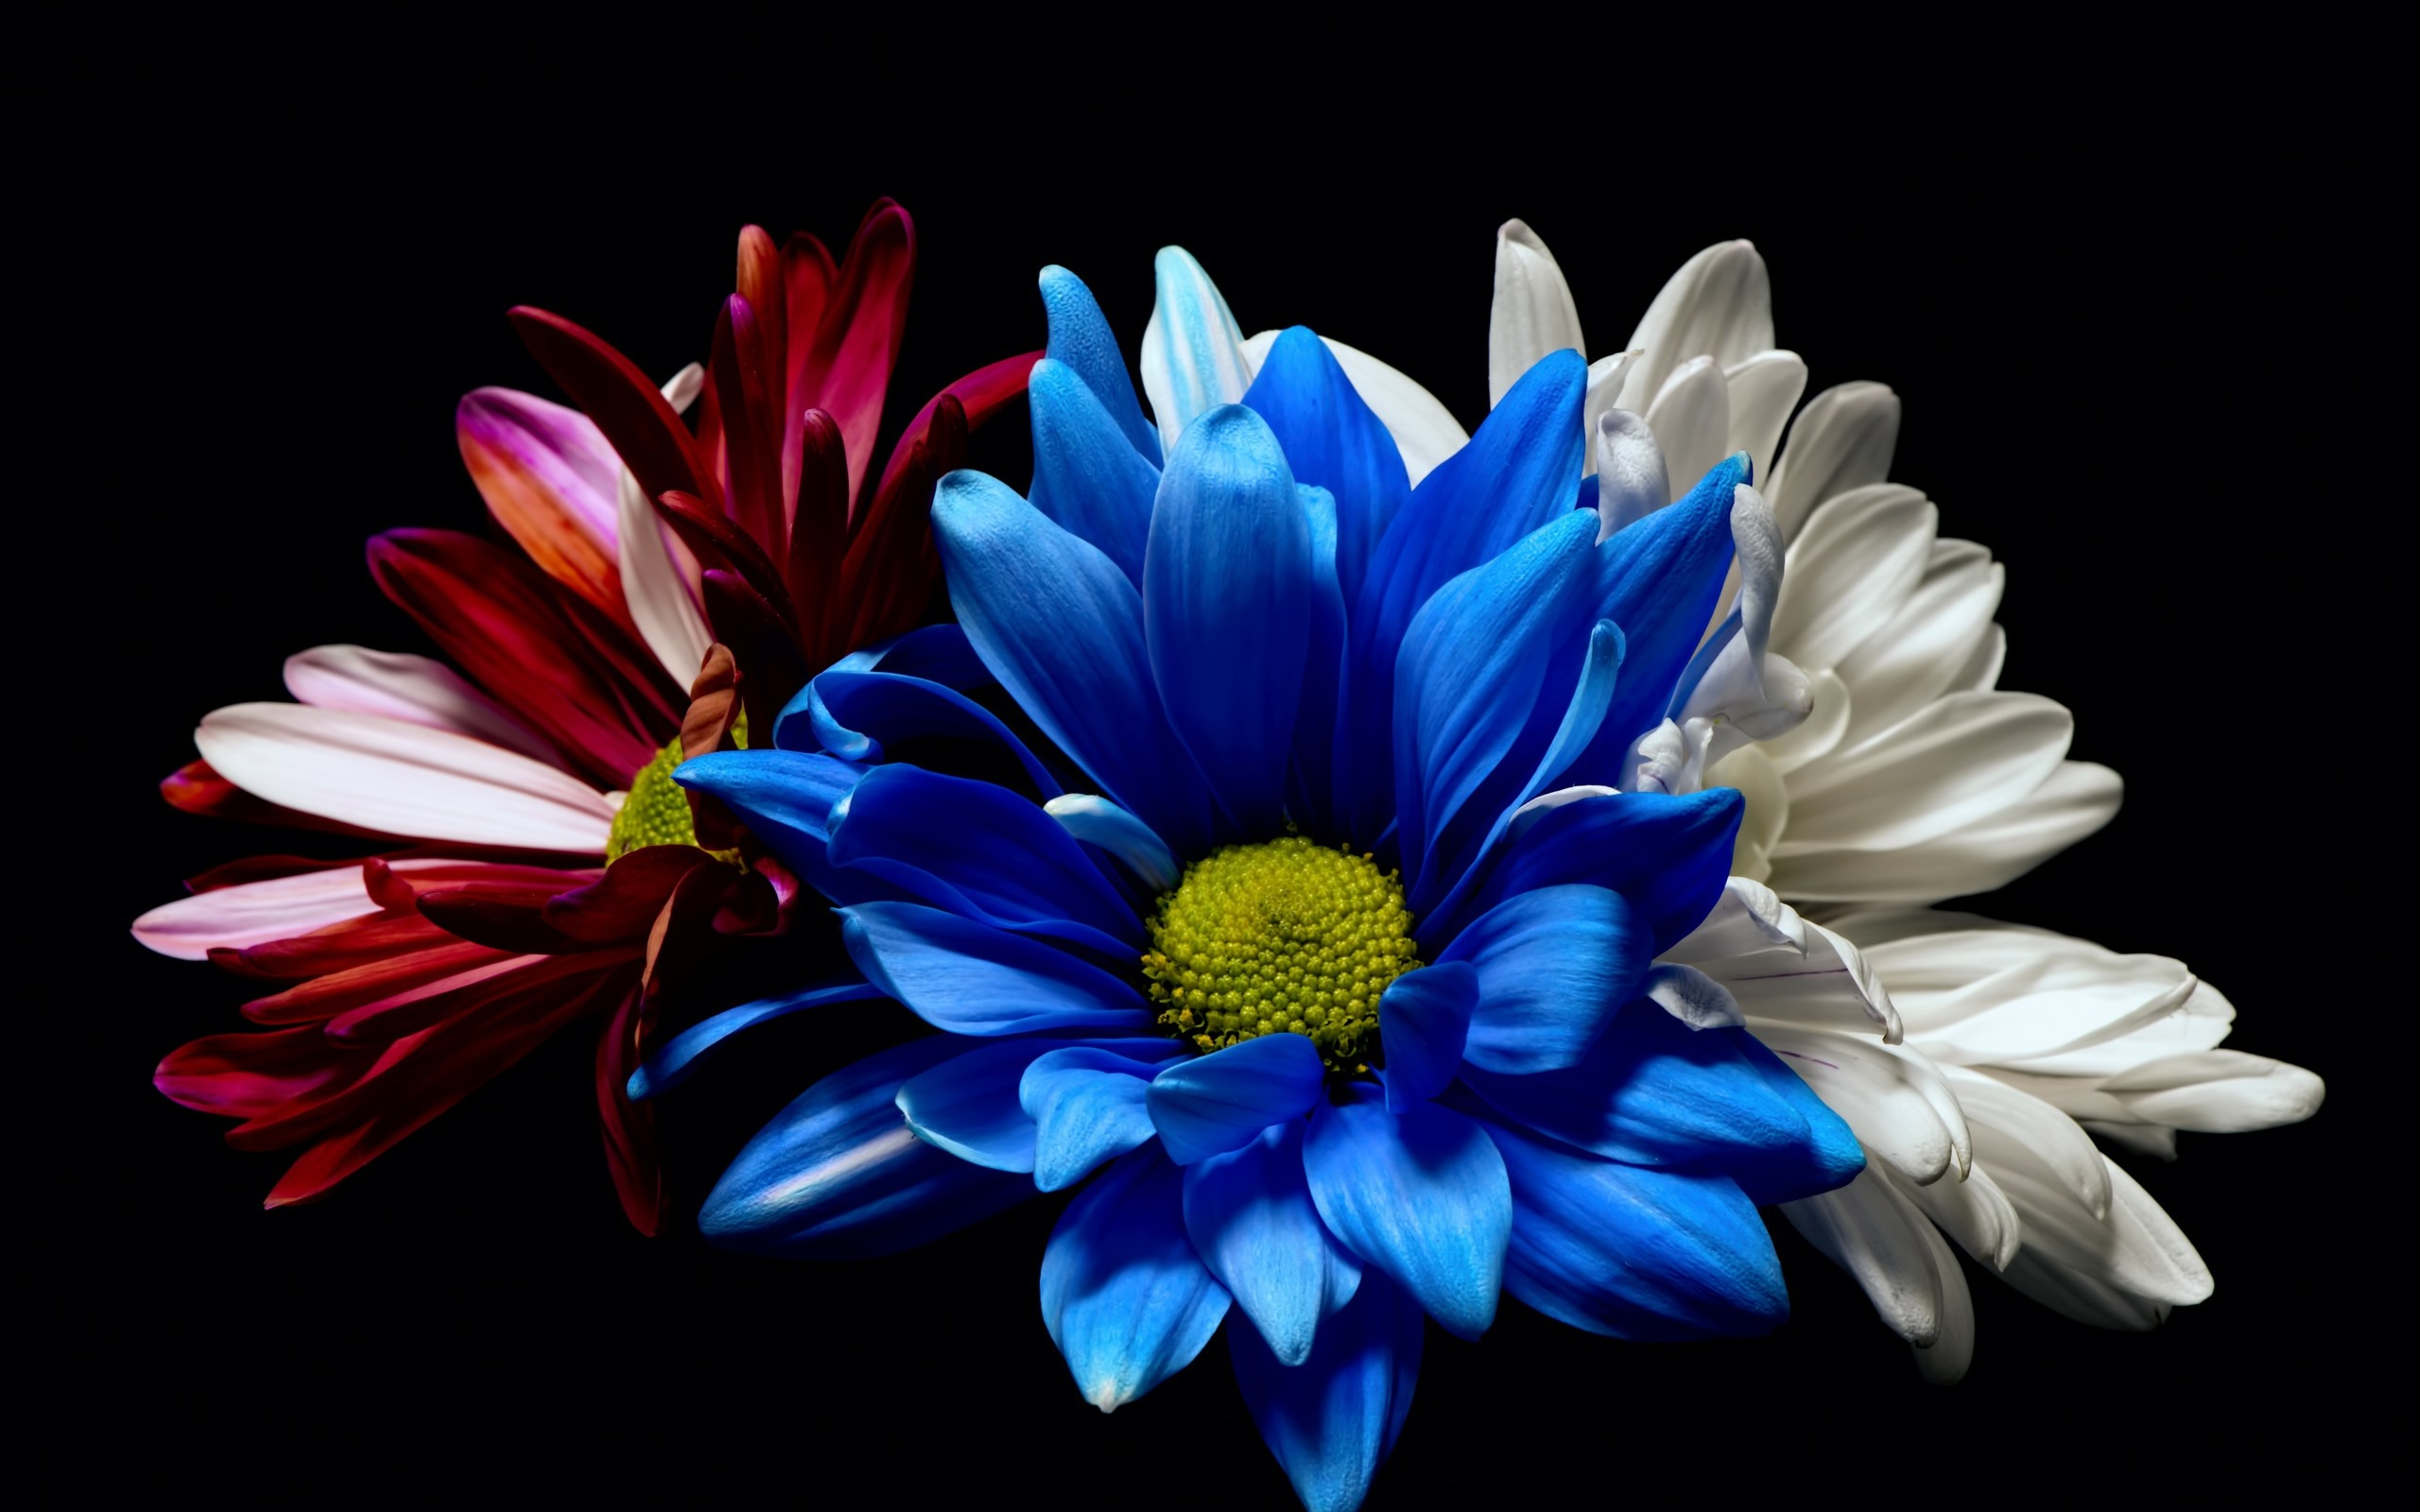 Blue And White Flower Wallpaper: Wallpaper Blue White And Red Gerbera Flowers, Black